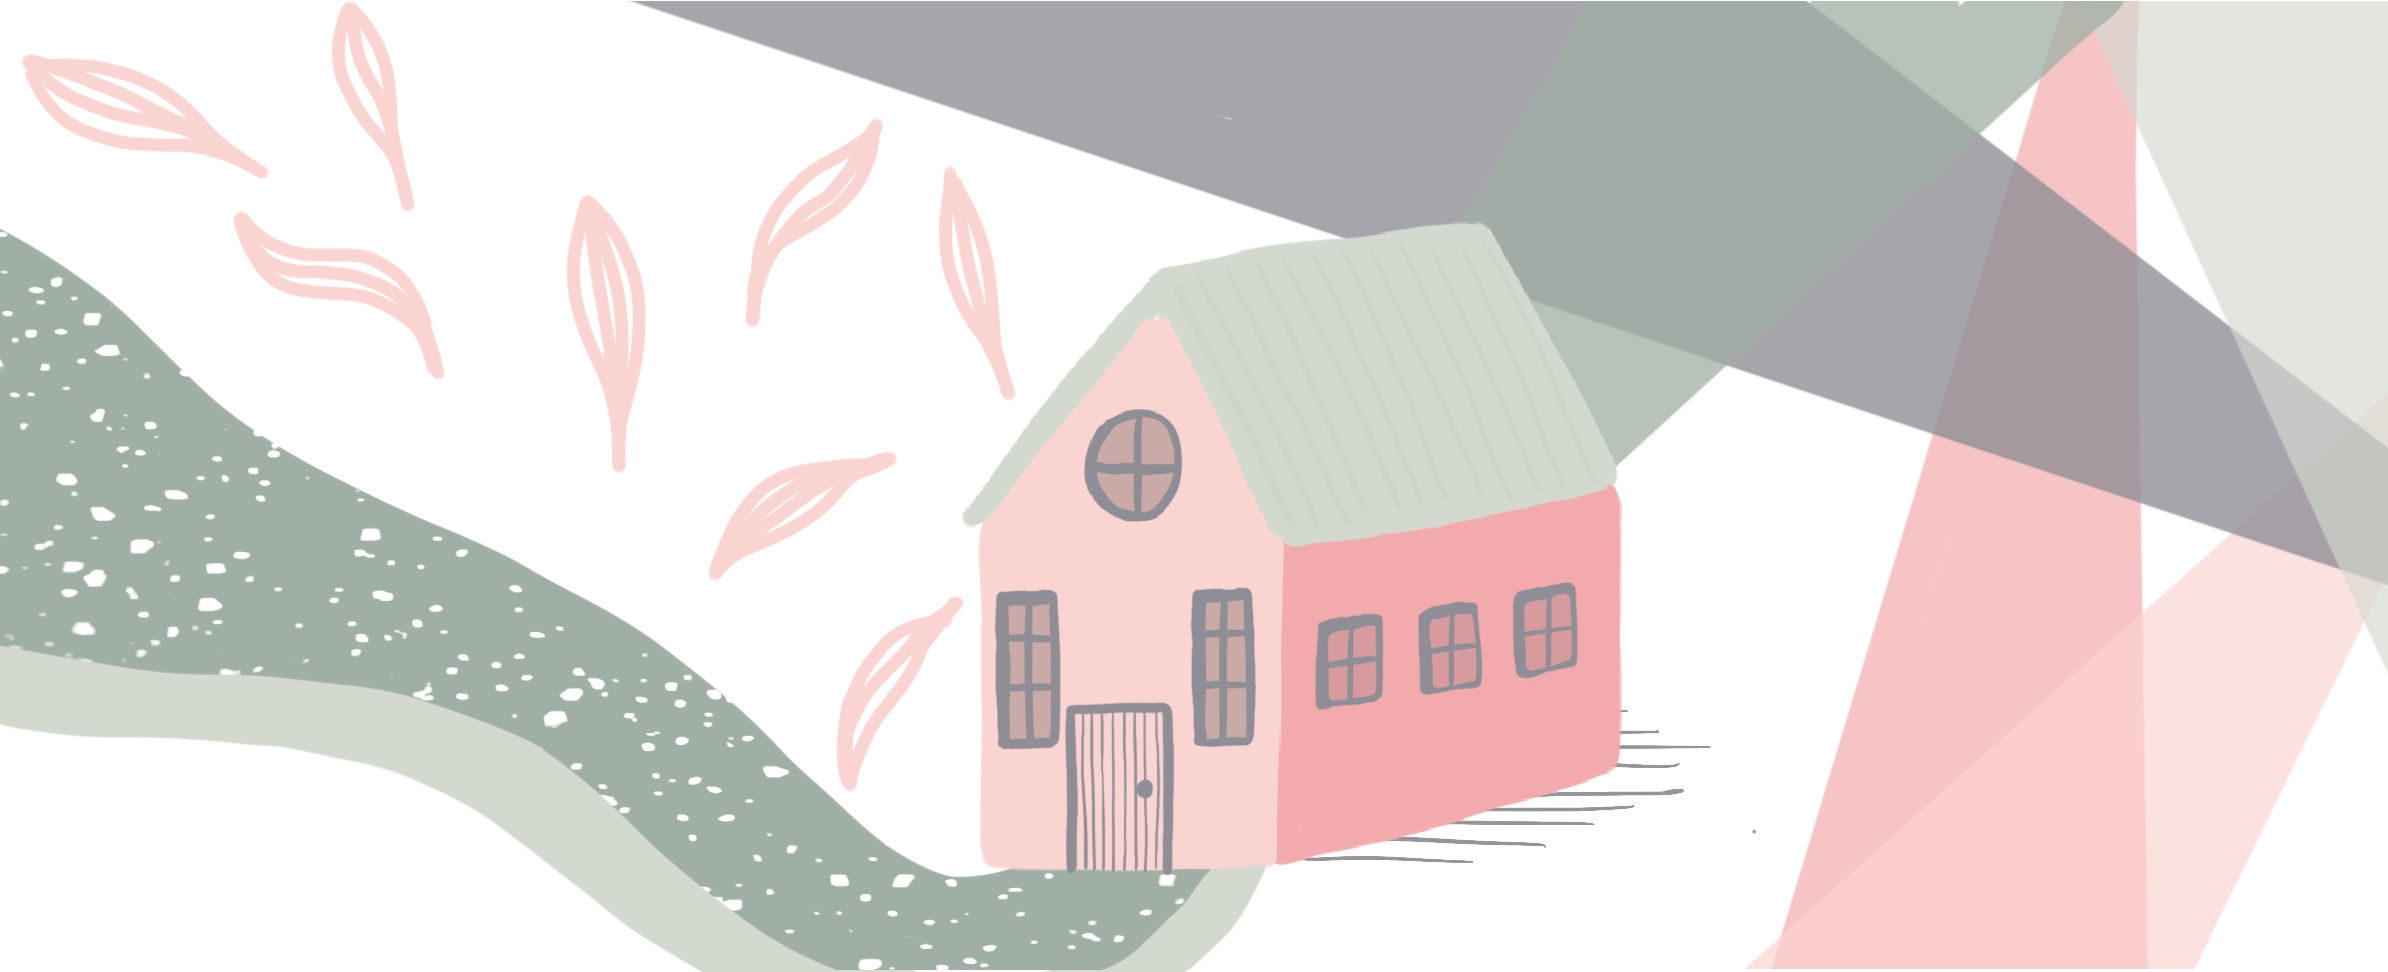 A pathway to a home illustration